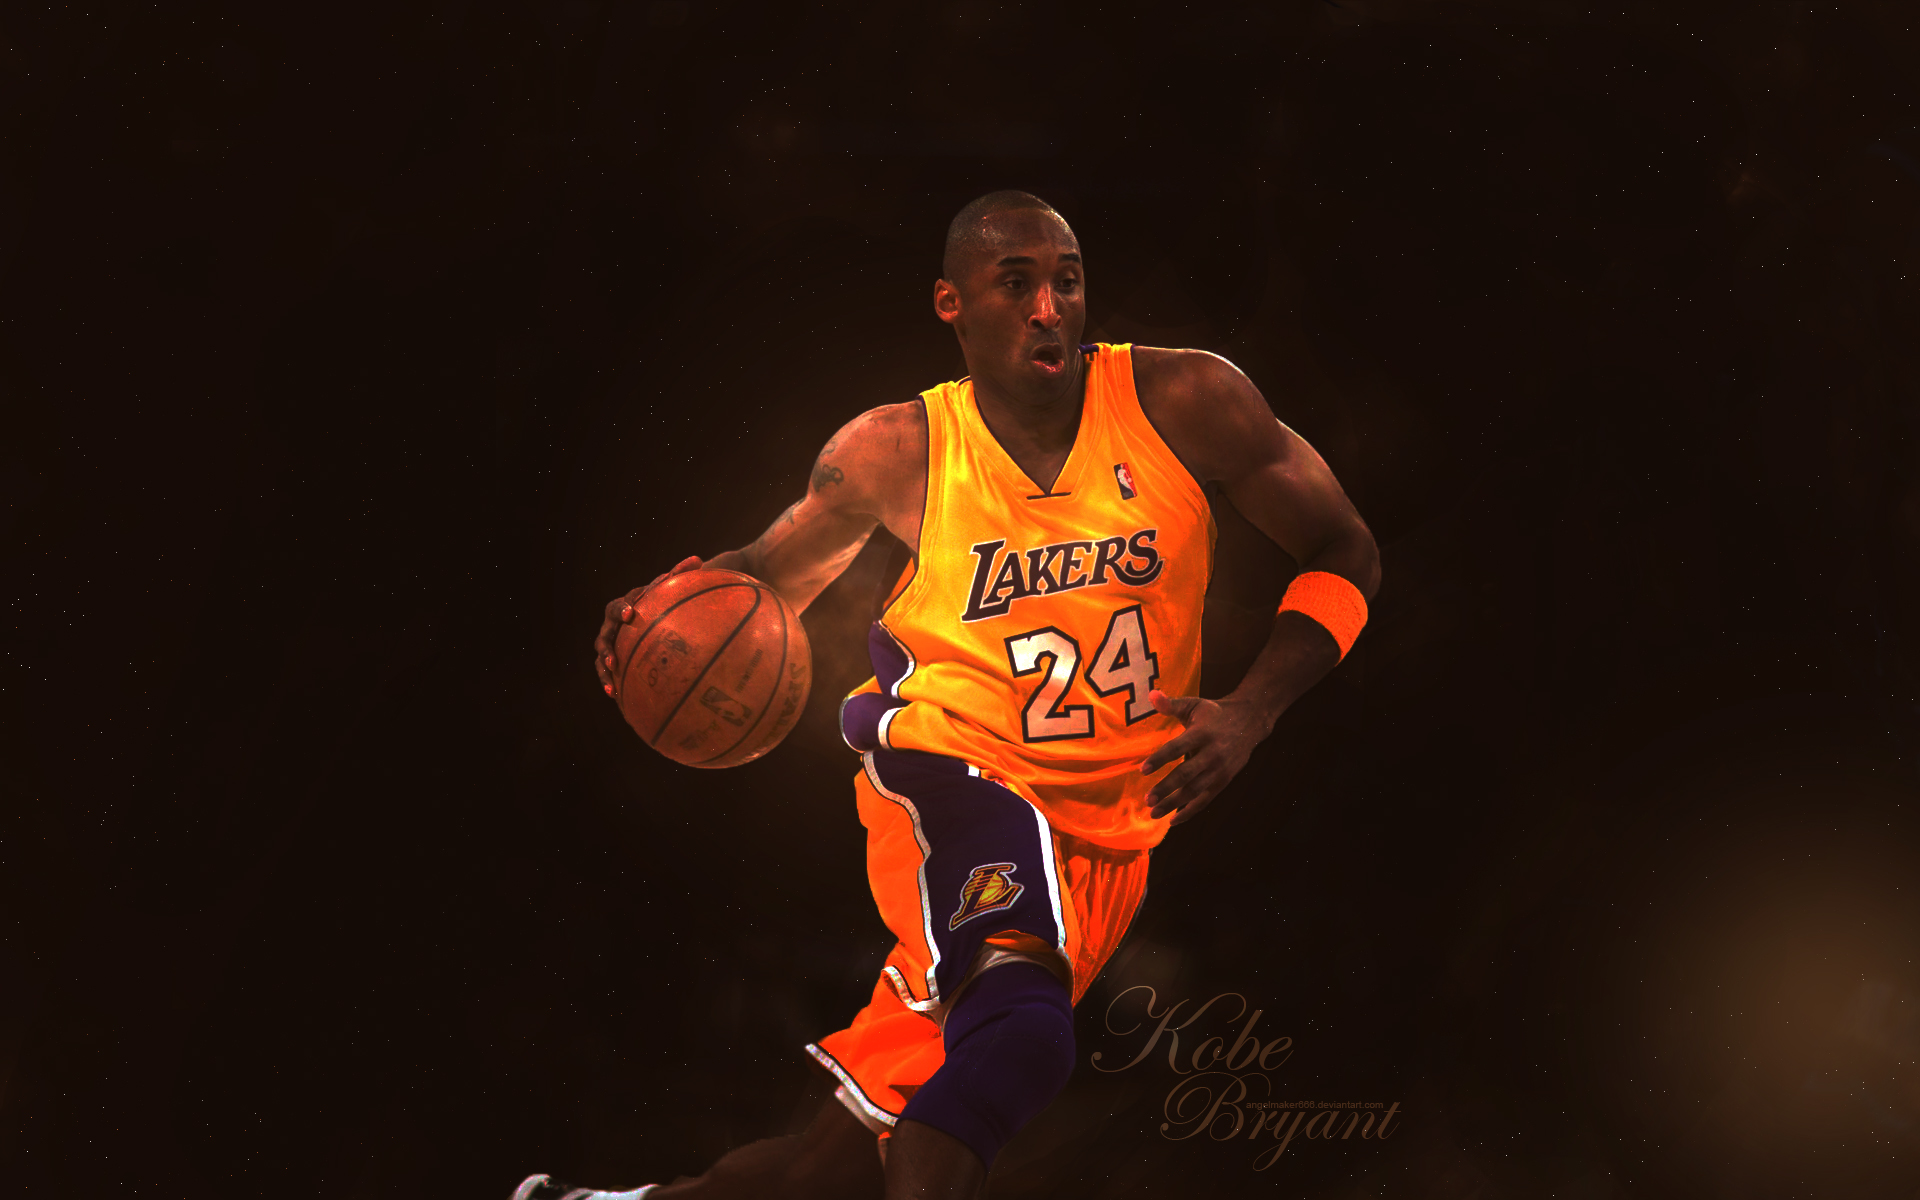 Download Kobe Bryant Wallpaper By Billion Photos